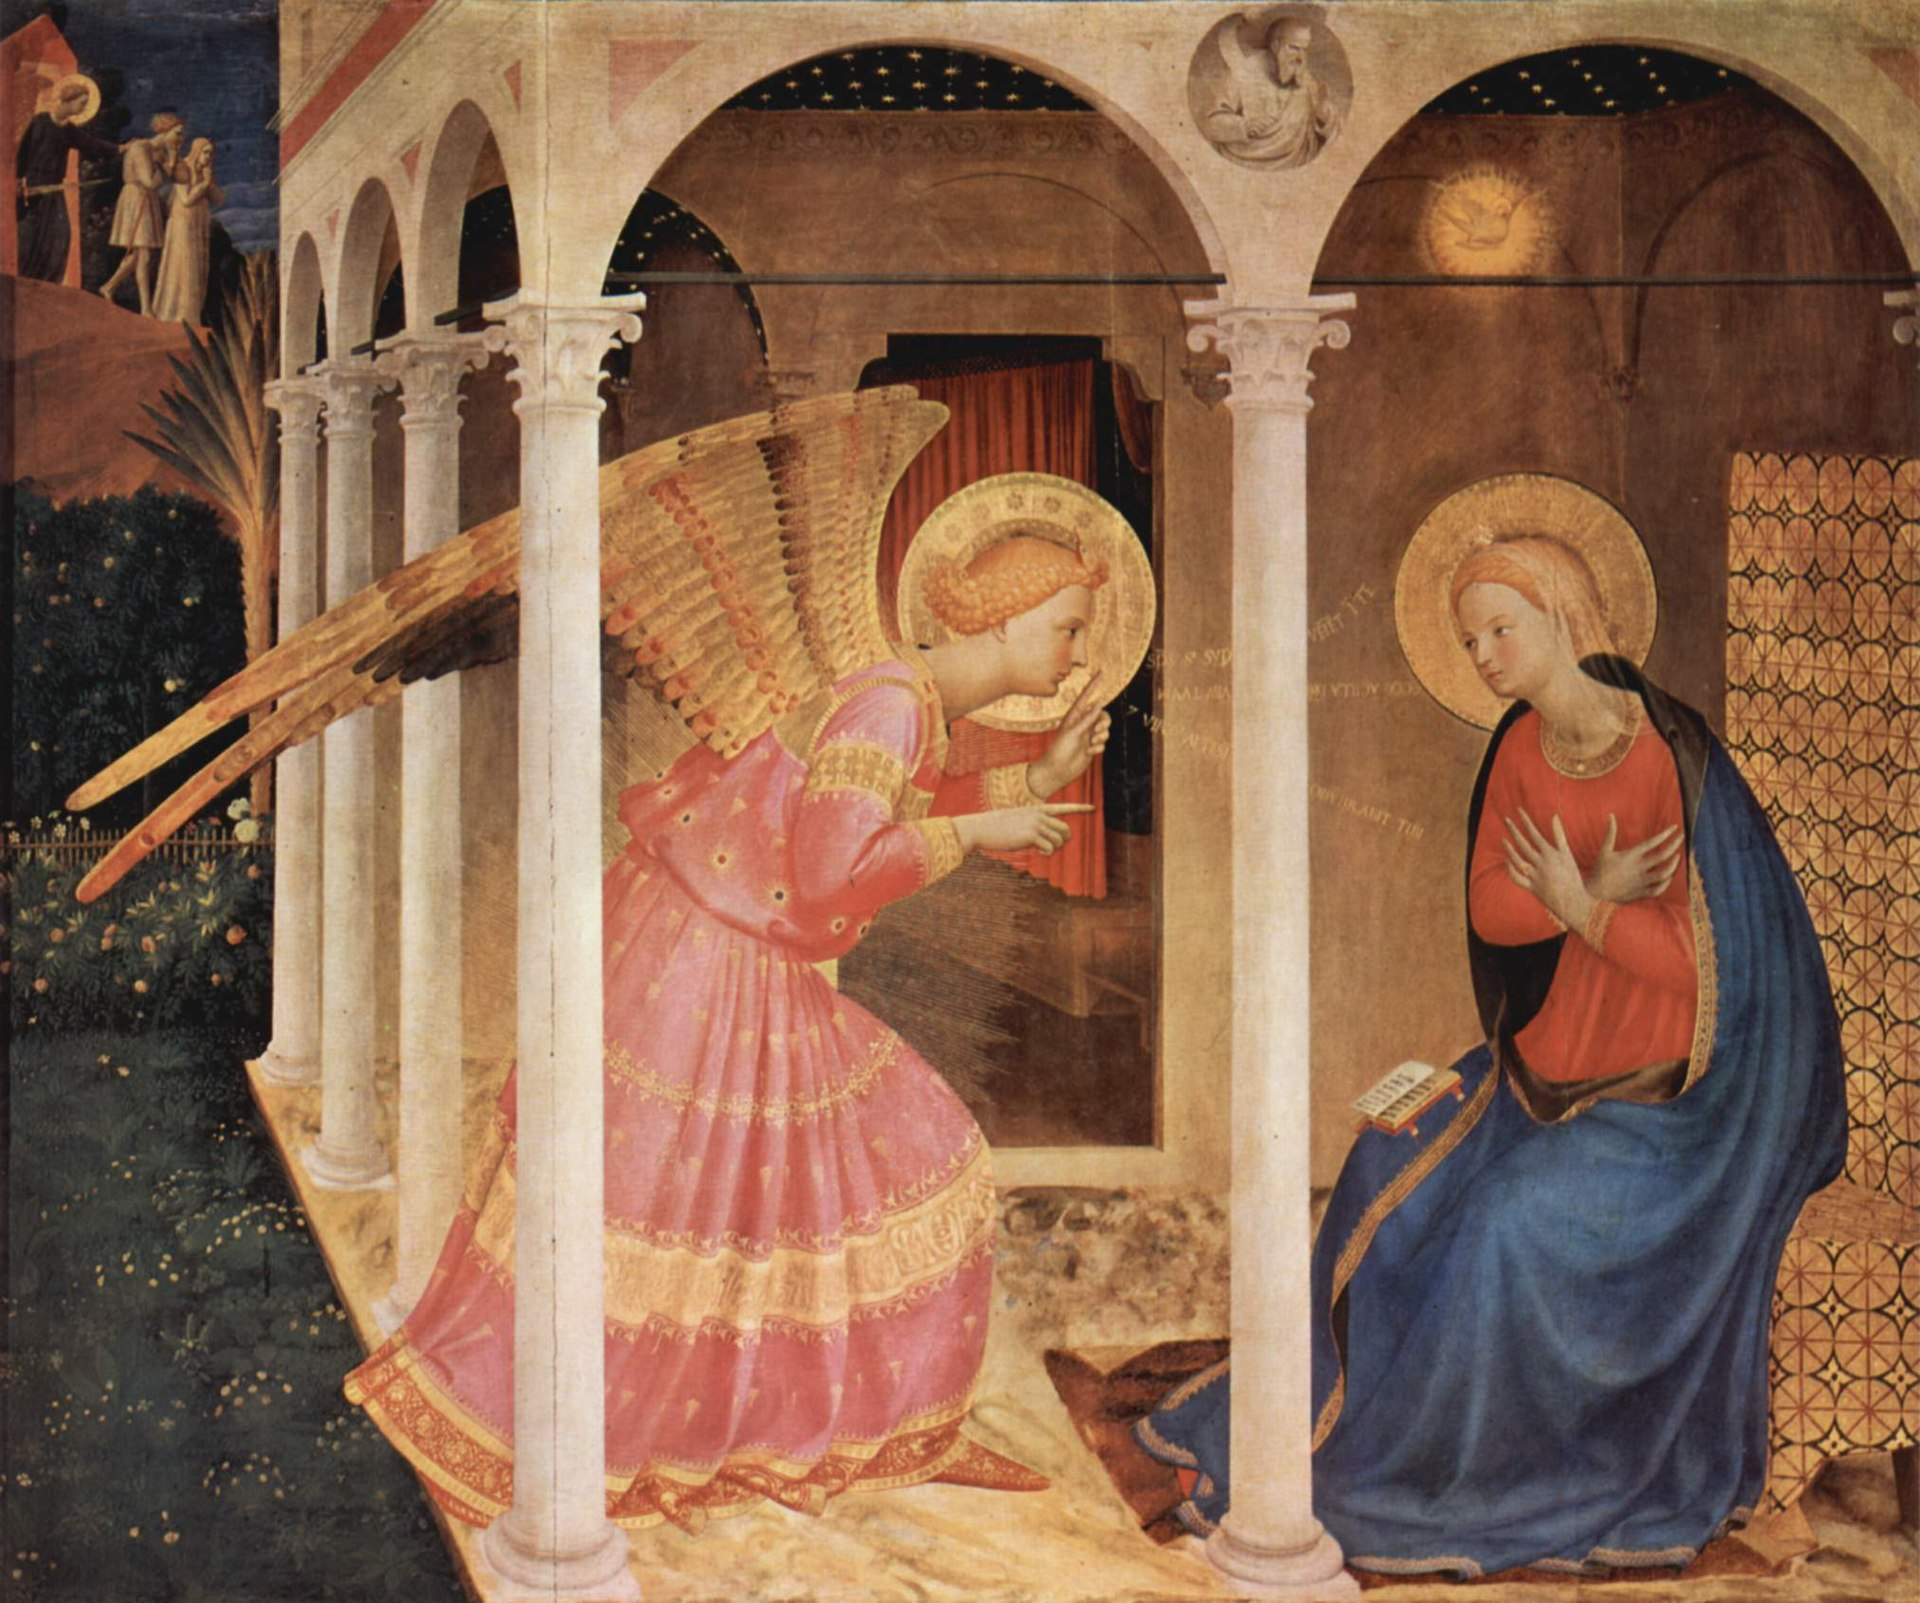 Fra Angelico, Annunciation (c. 1438), Diocesan Museum, Cortona